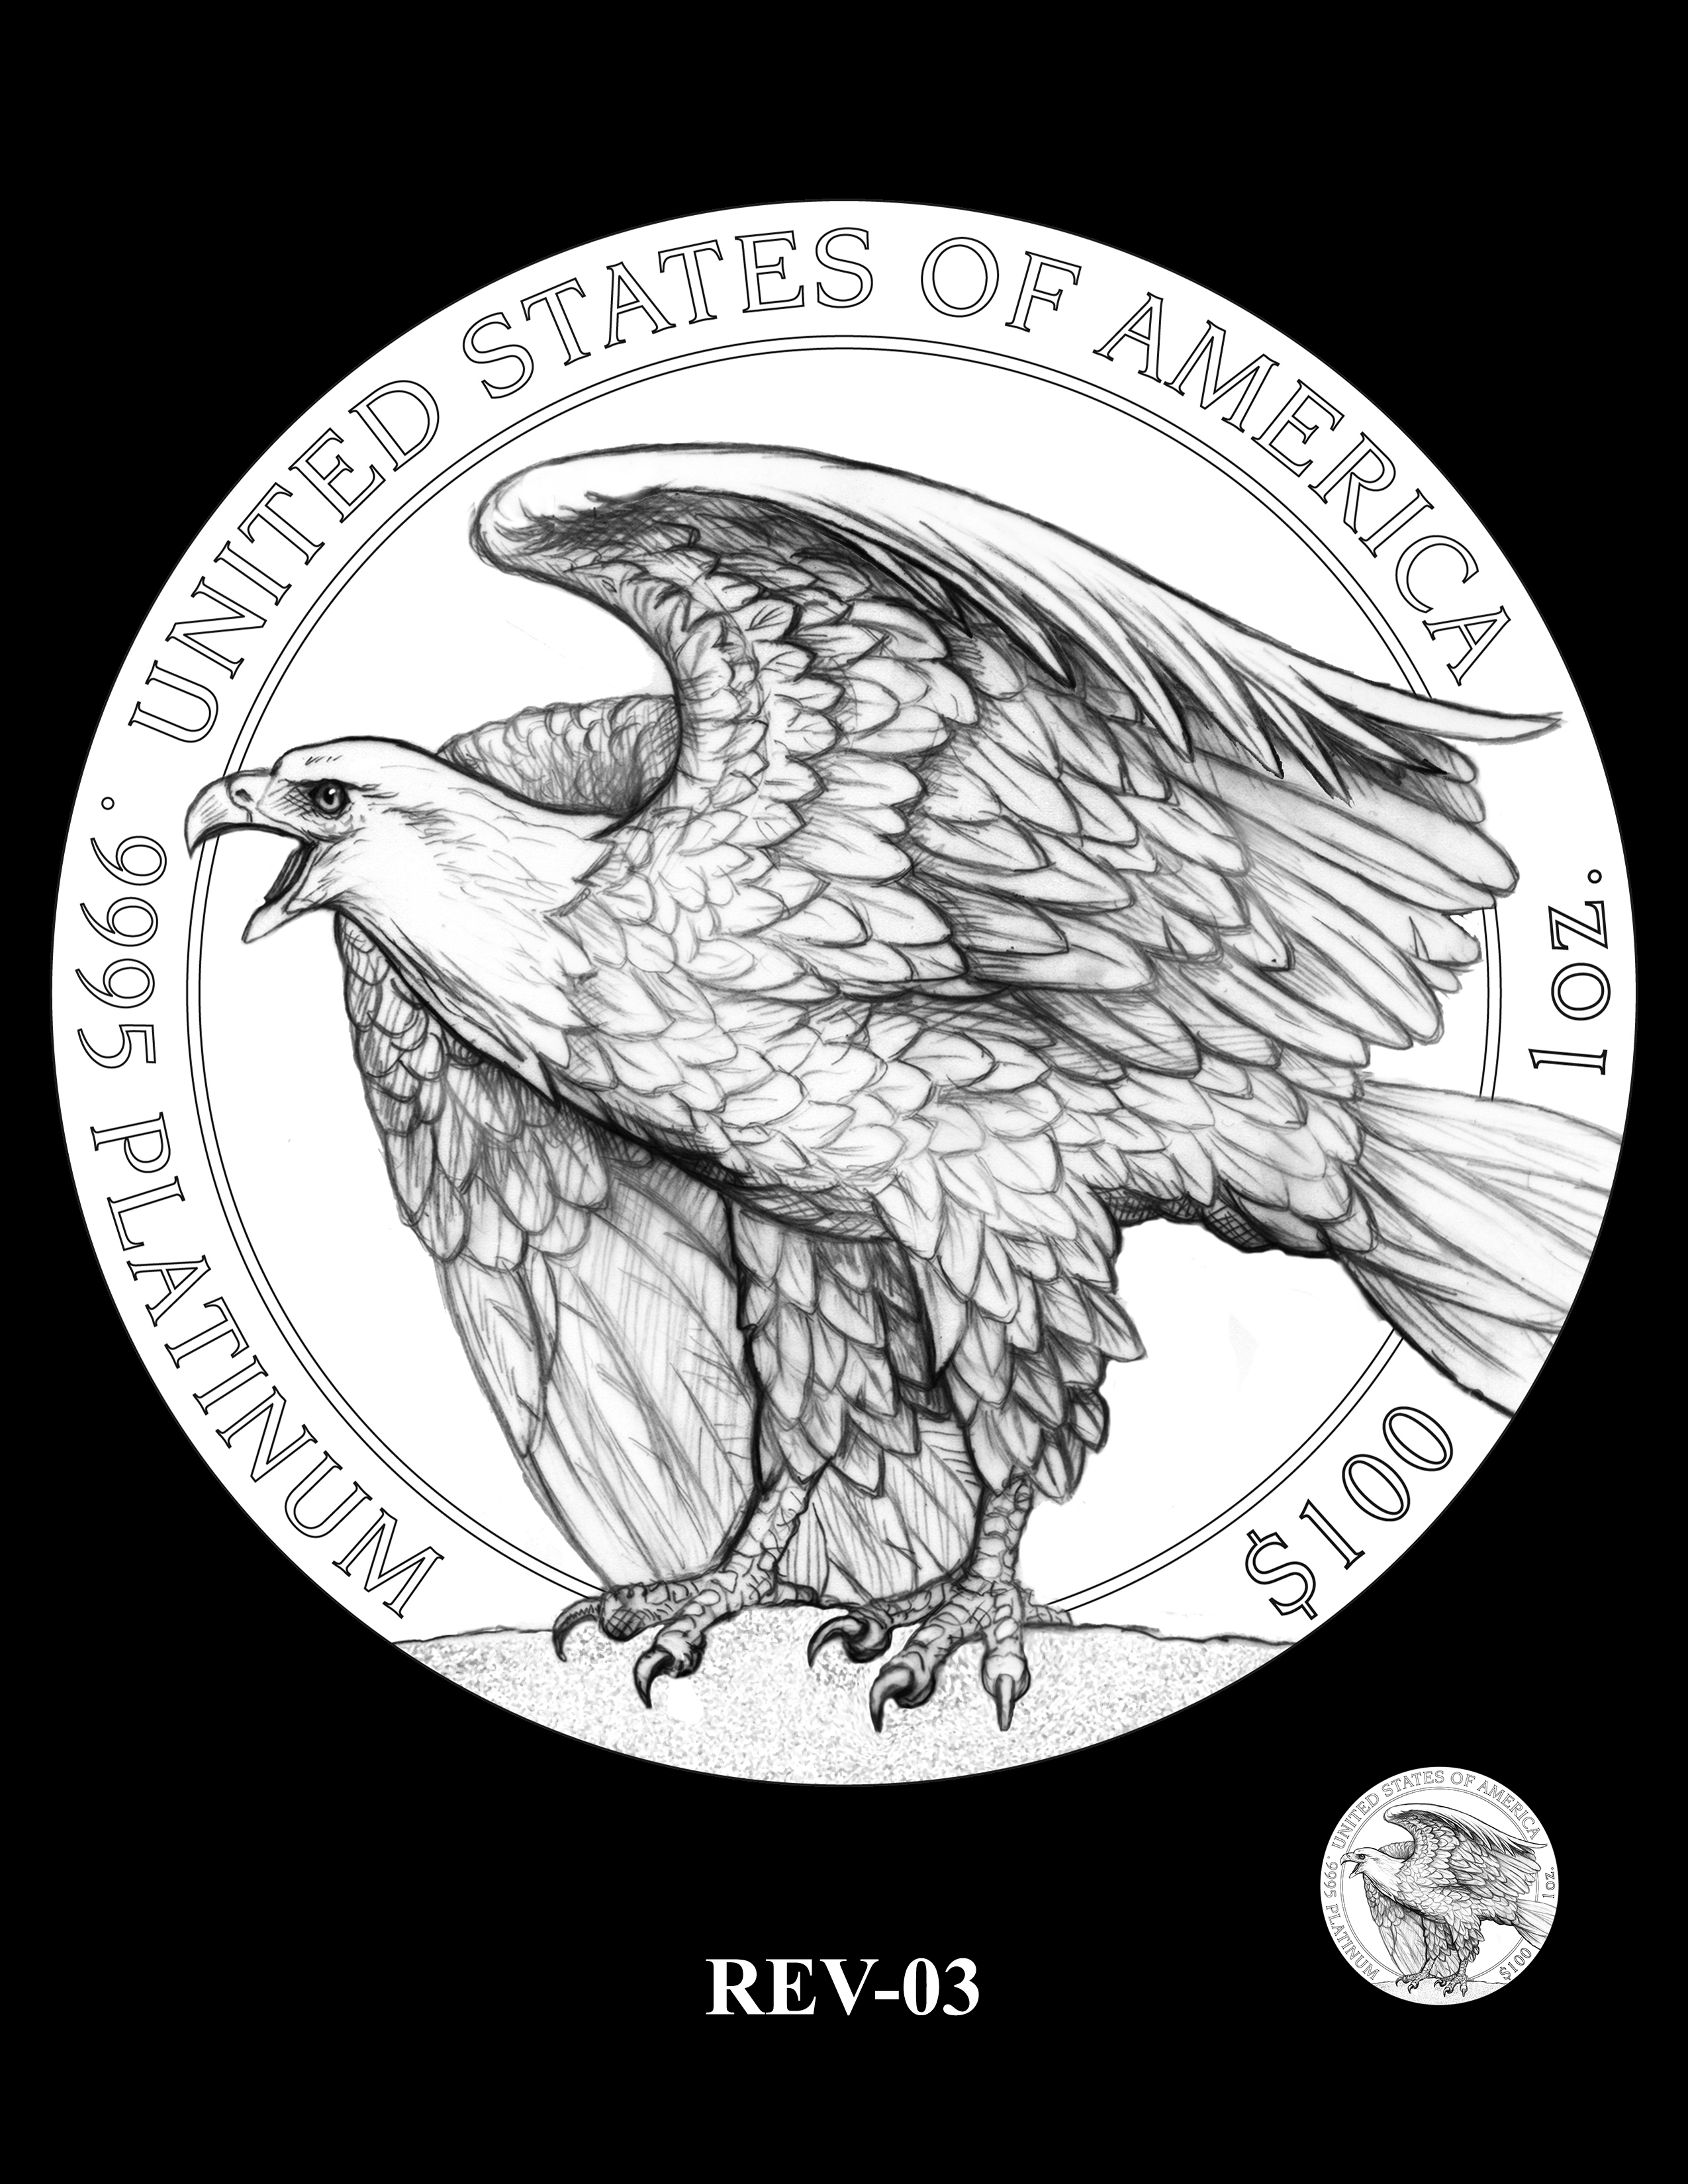 SET03-REV-03 - 2018 2019 and 2020 American Eagle Platinum Proof Program